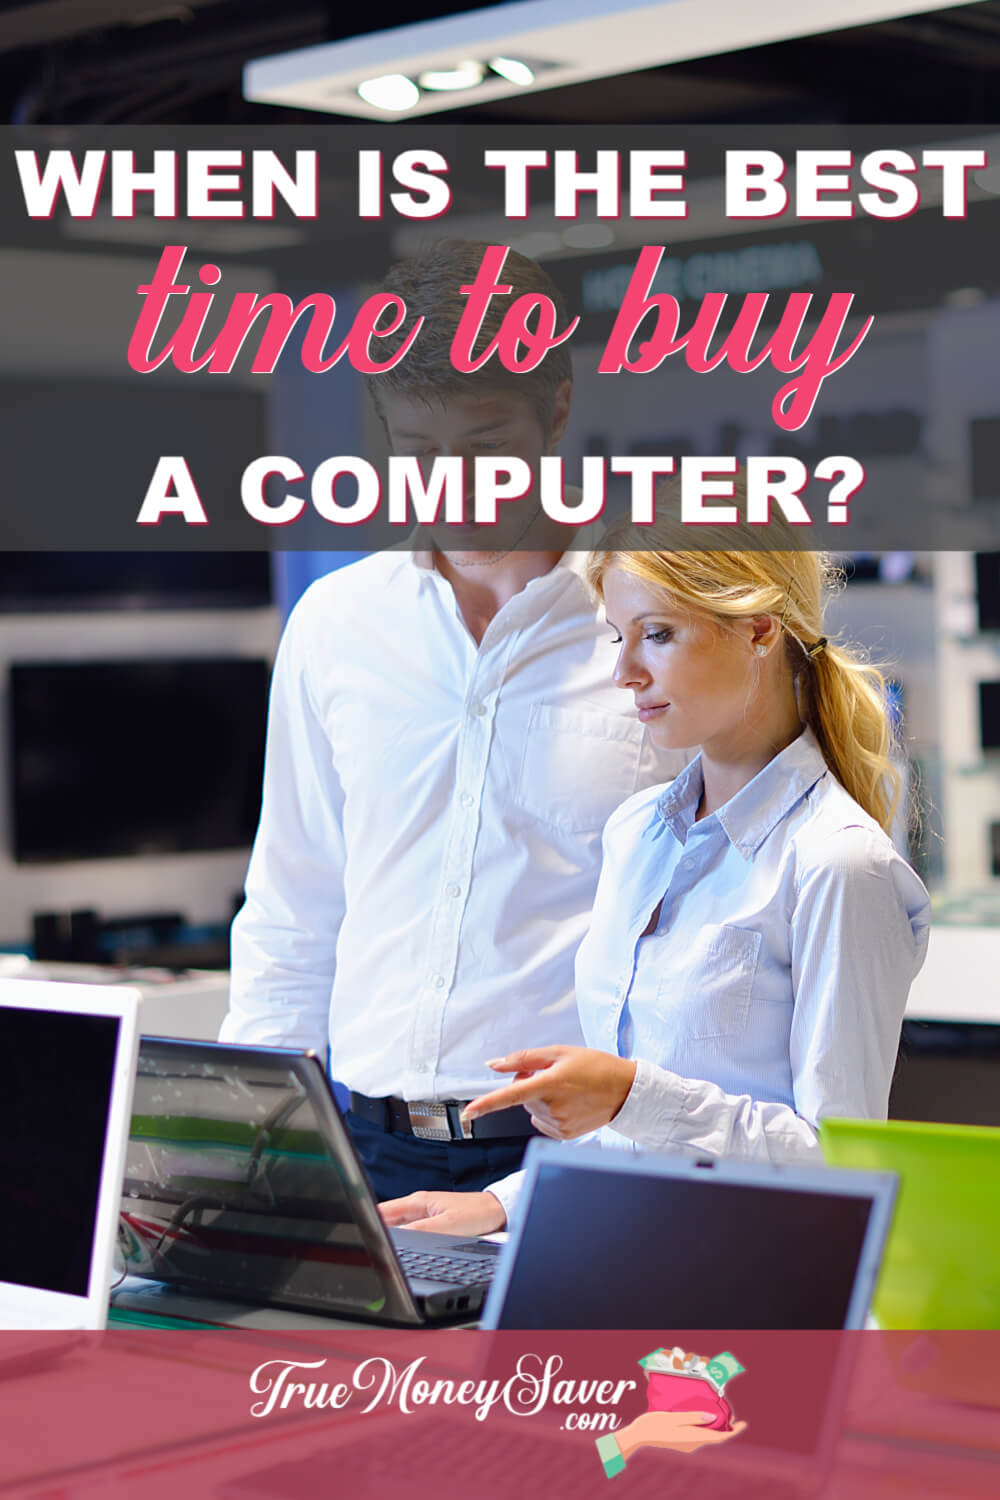 When Is The Best Time To Buy A Computer?